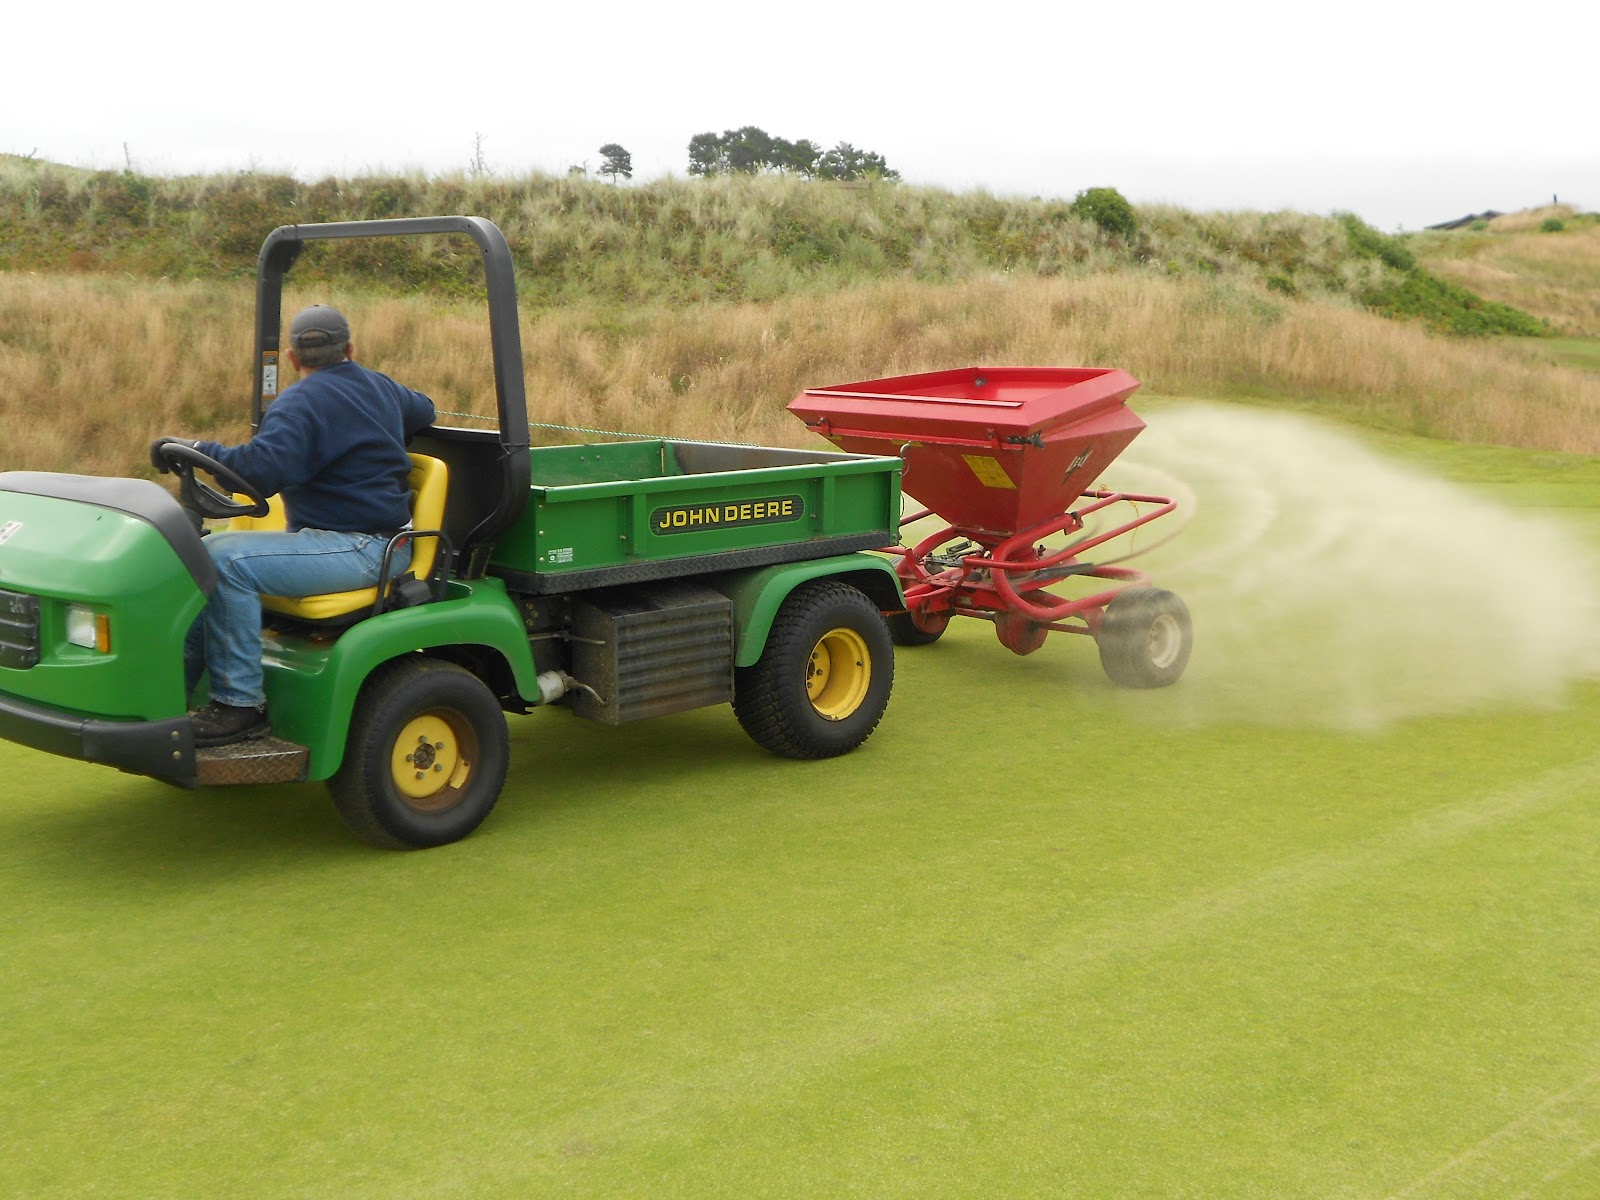 Jerry Top Dressing 16 Green With A Lely Spreader